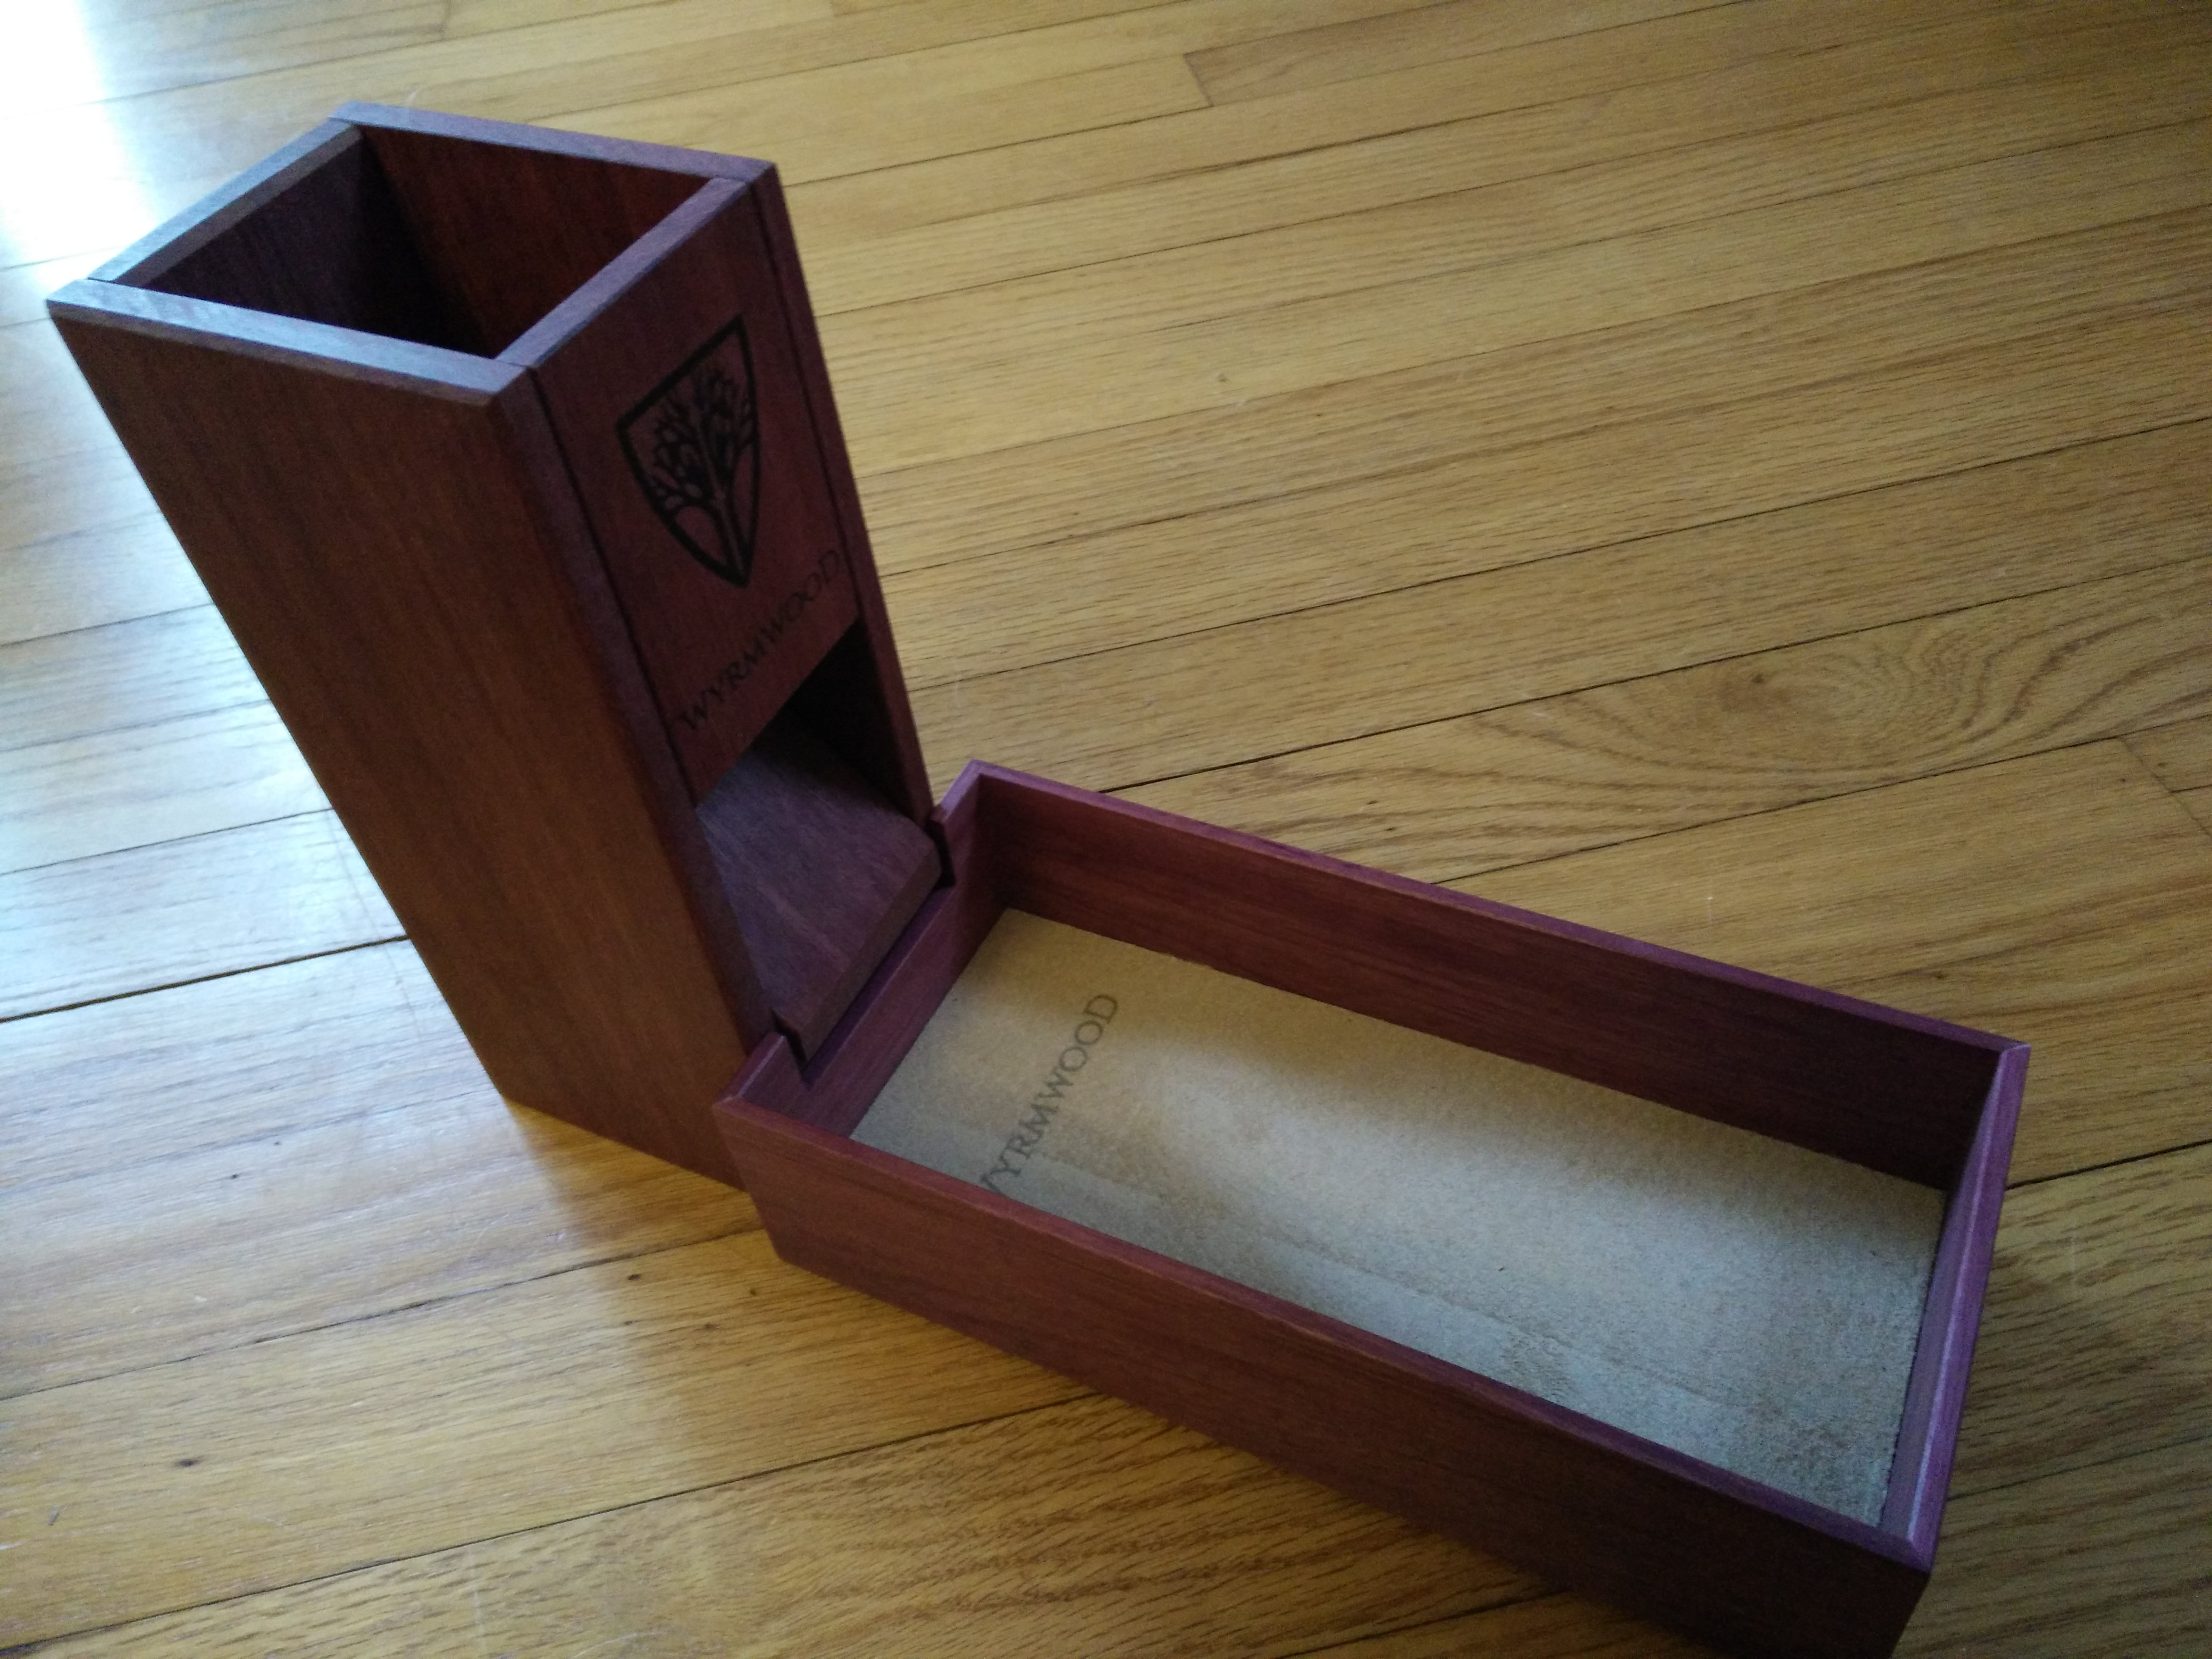 Second Look—Wyrmwood Gaming Dice Tower, Tray, and Dice Vault